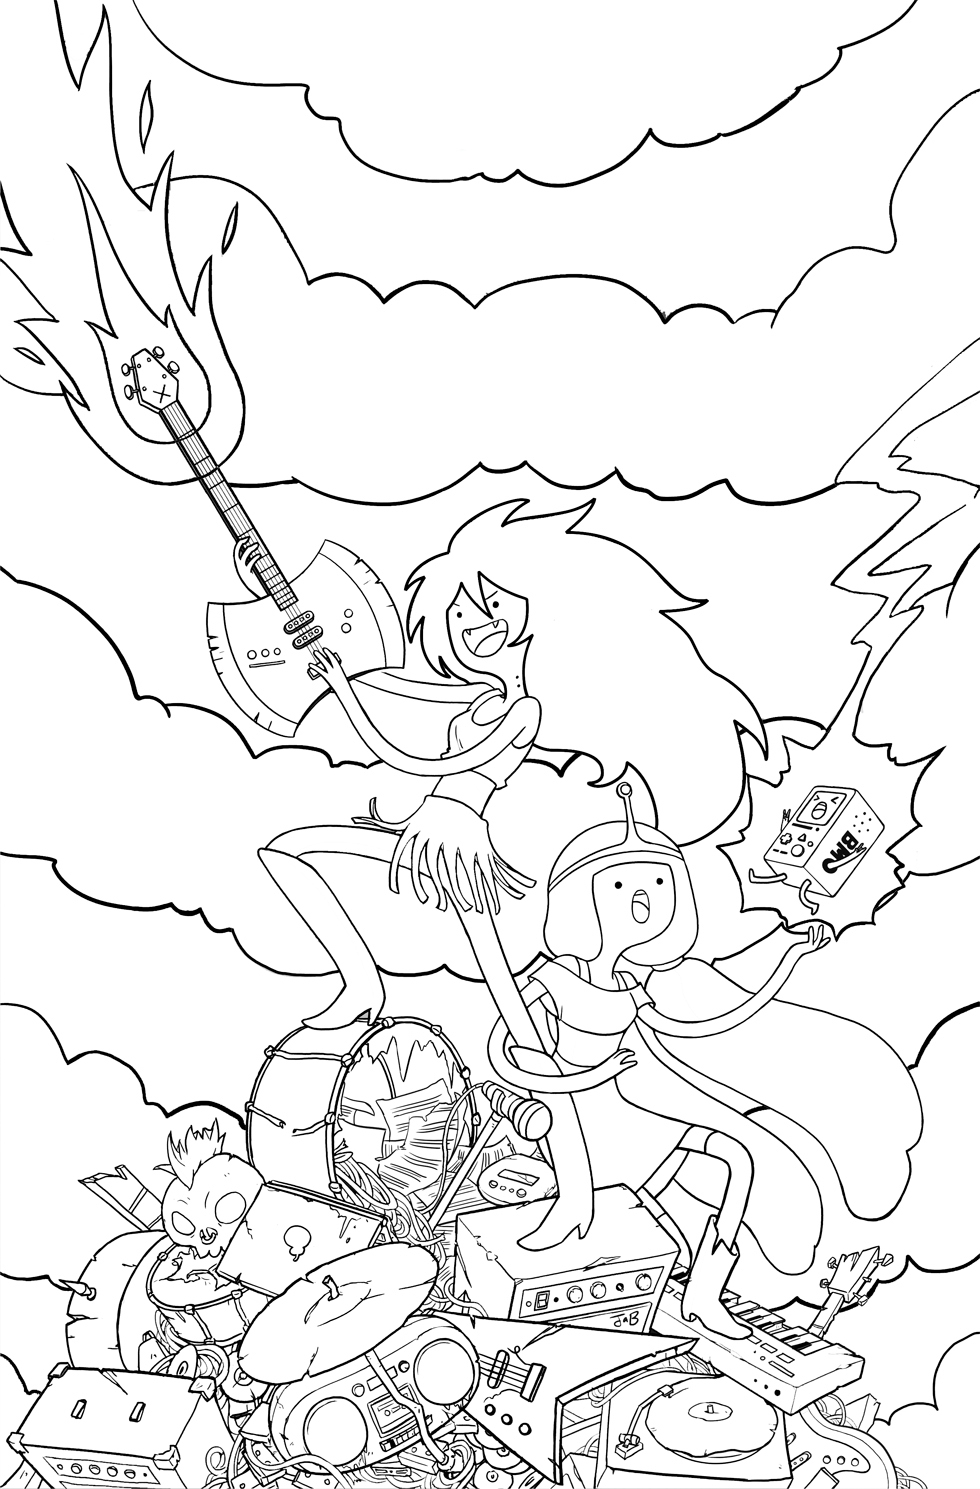 adventure time coloring pages adventure time coloring pages best coloring pages for kids time adventure pages coloring